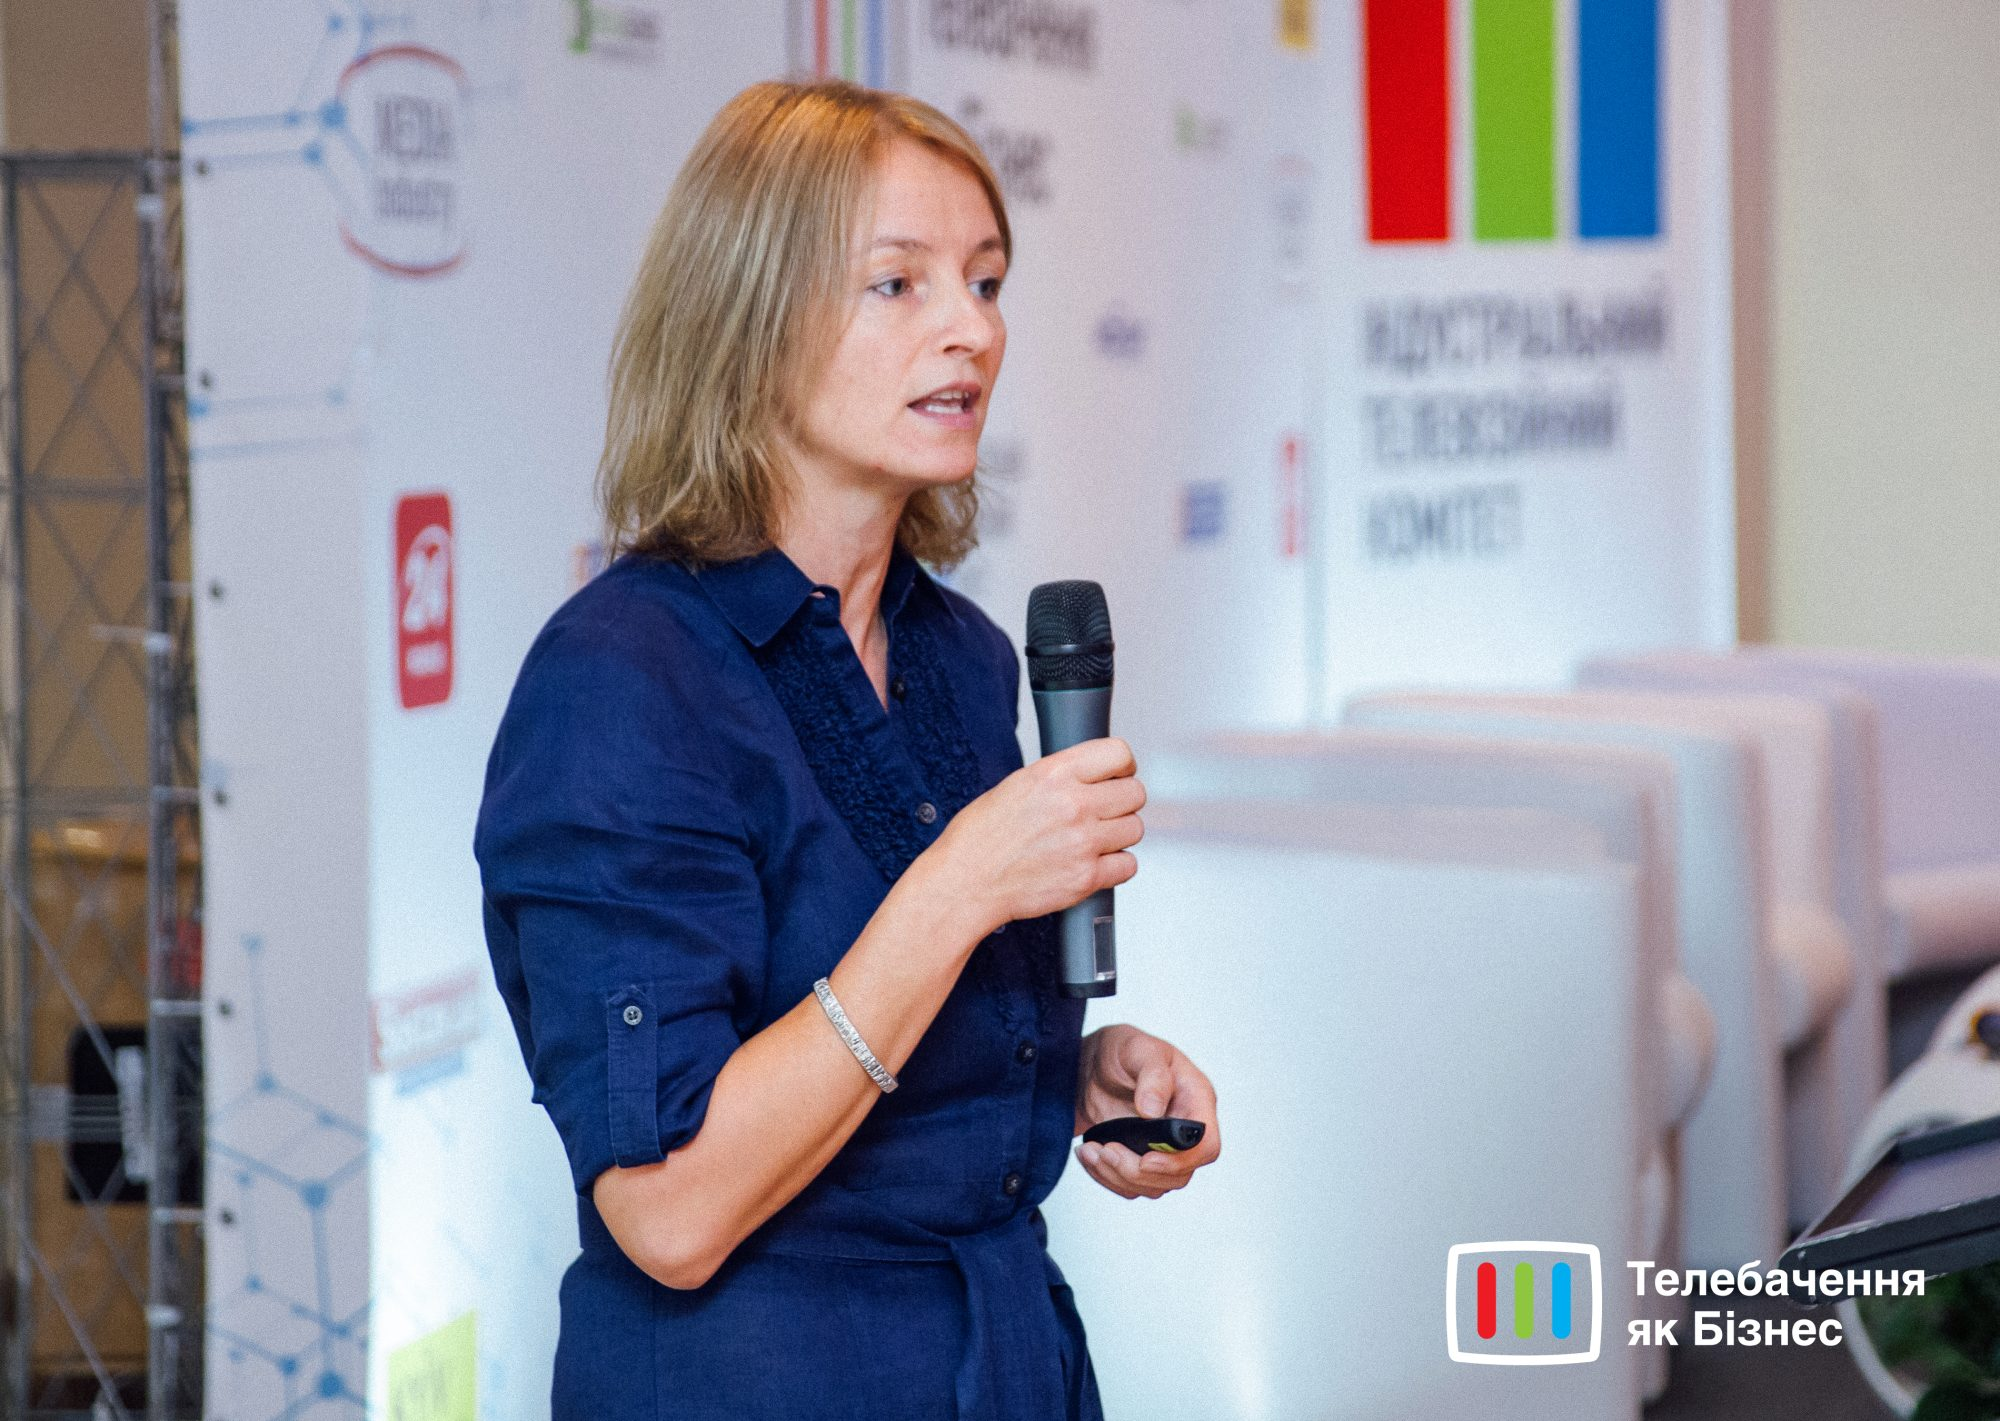 Renata Uhlarikova, Kantar Media, International Business Development Director